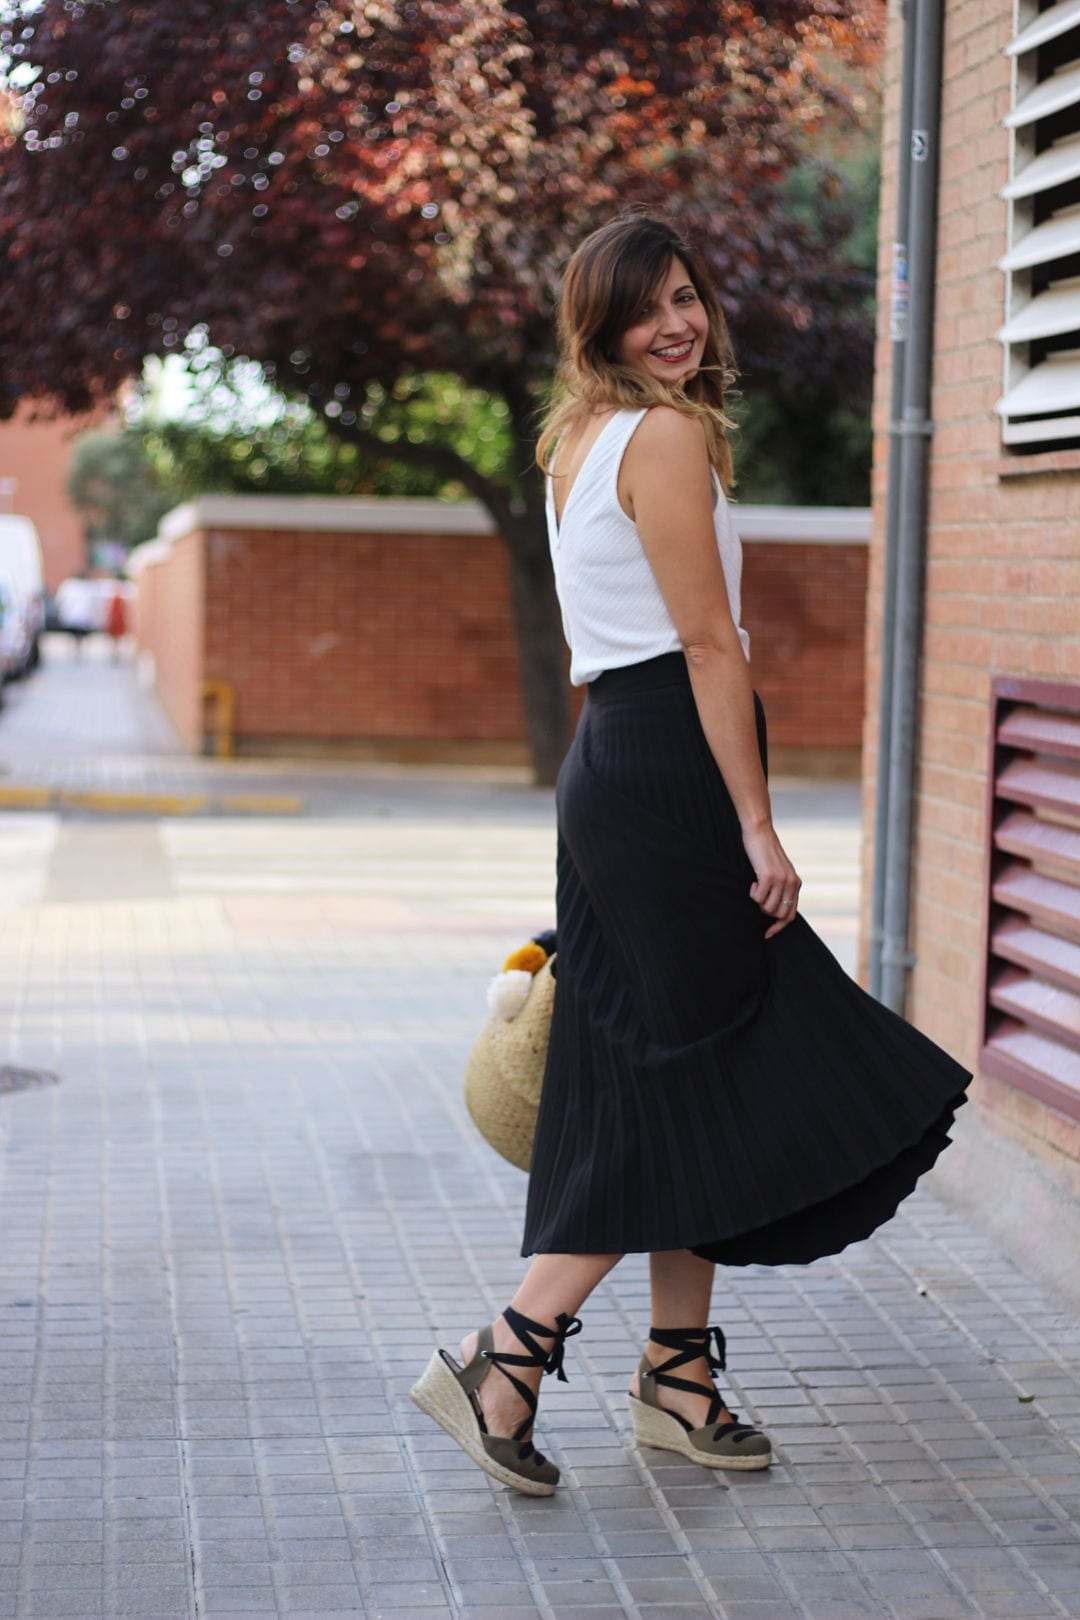 olive green espadrilles and midi skirt outfit